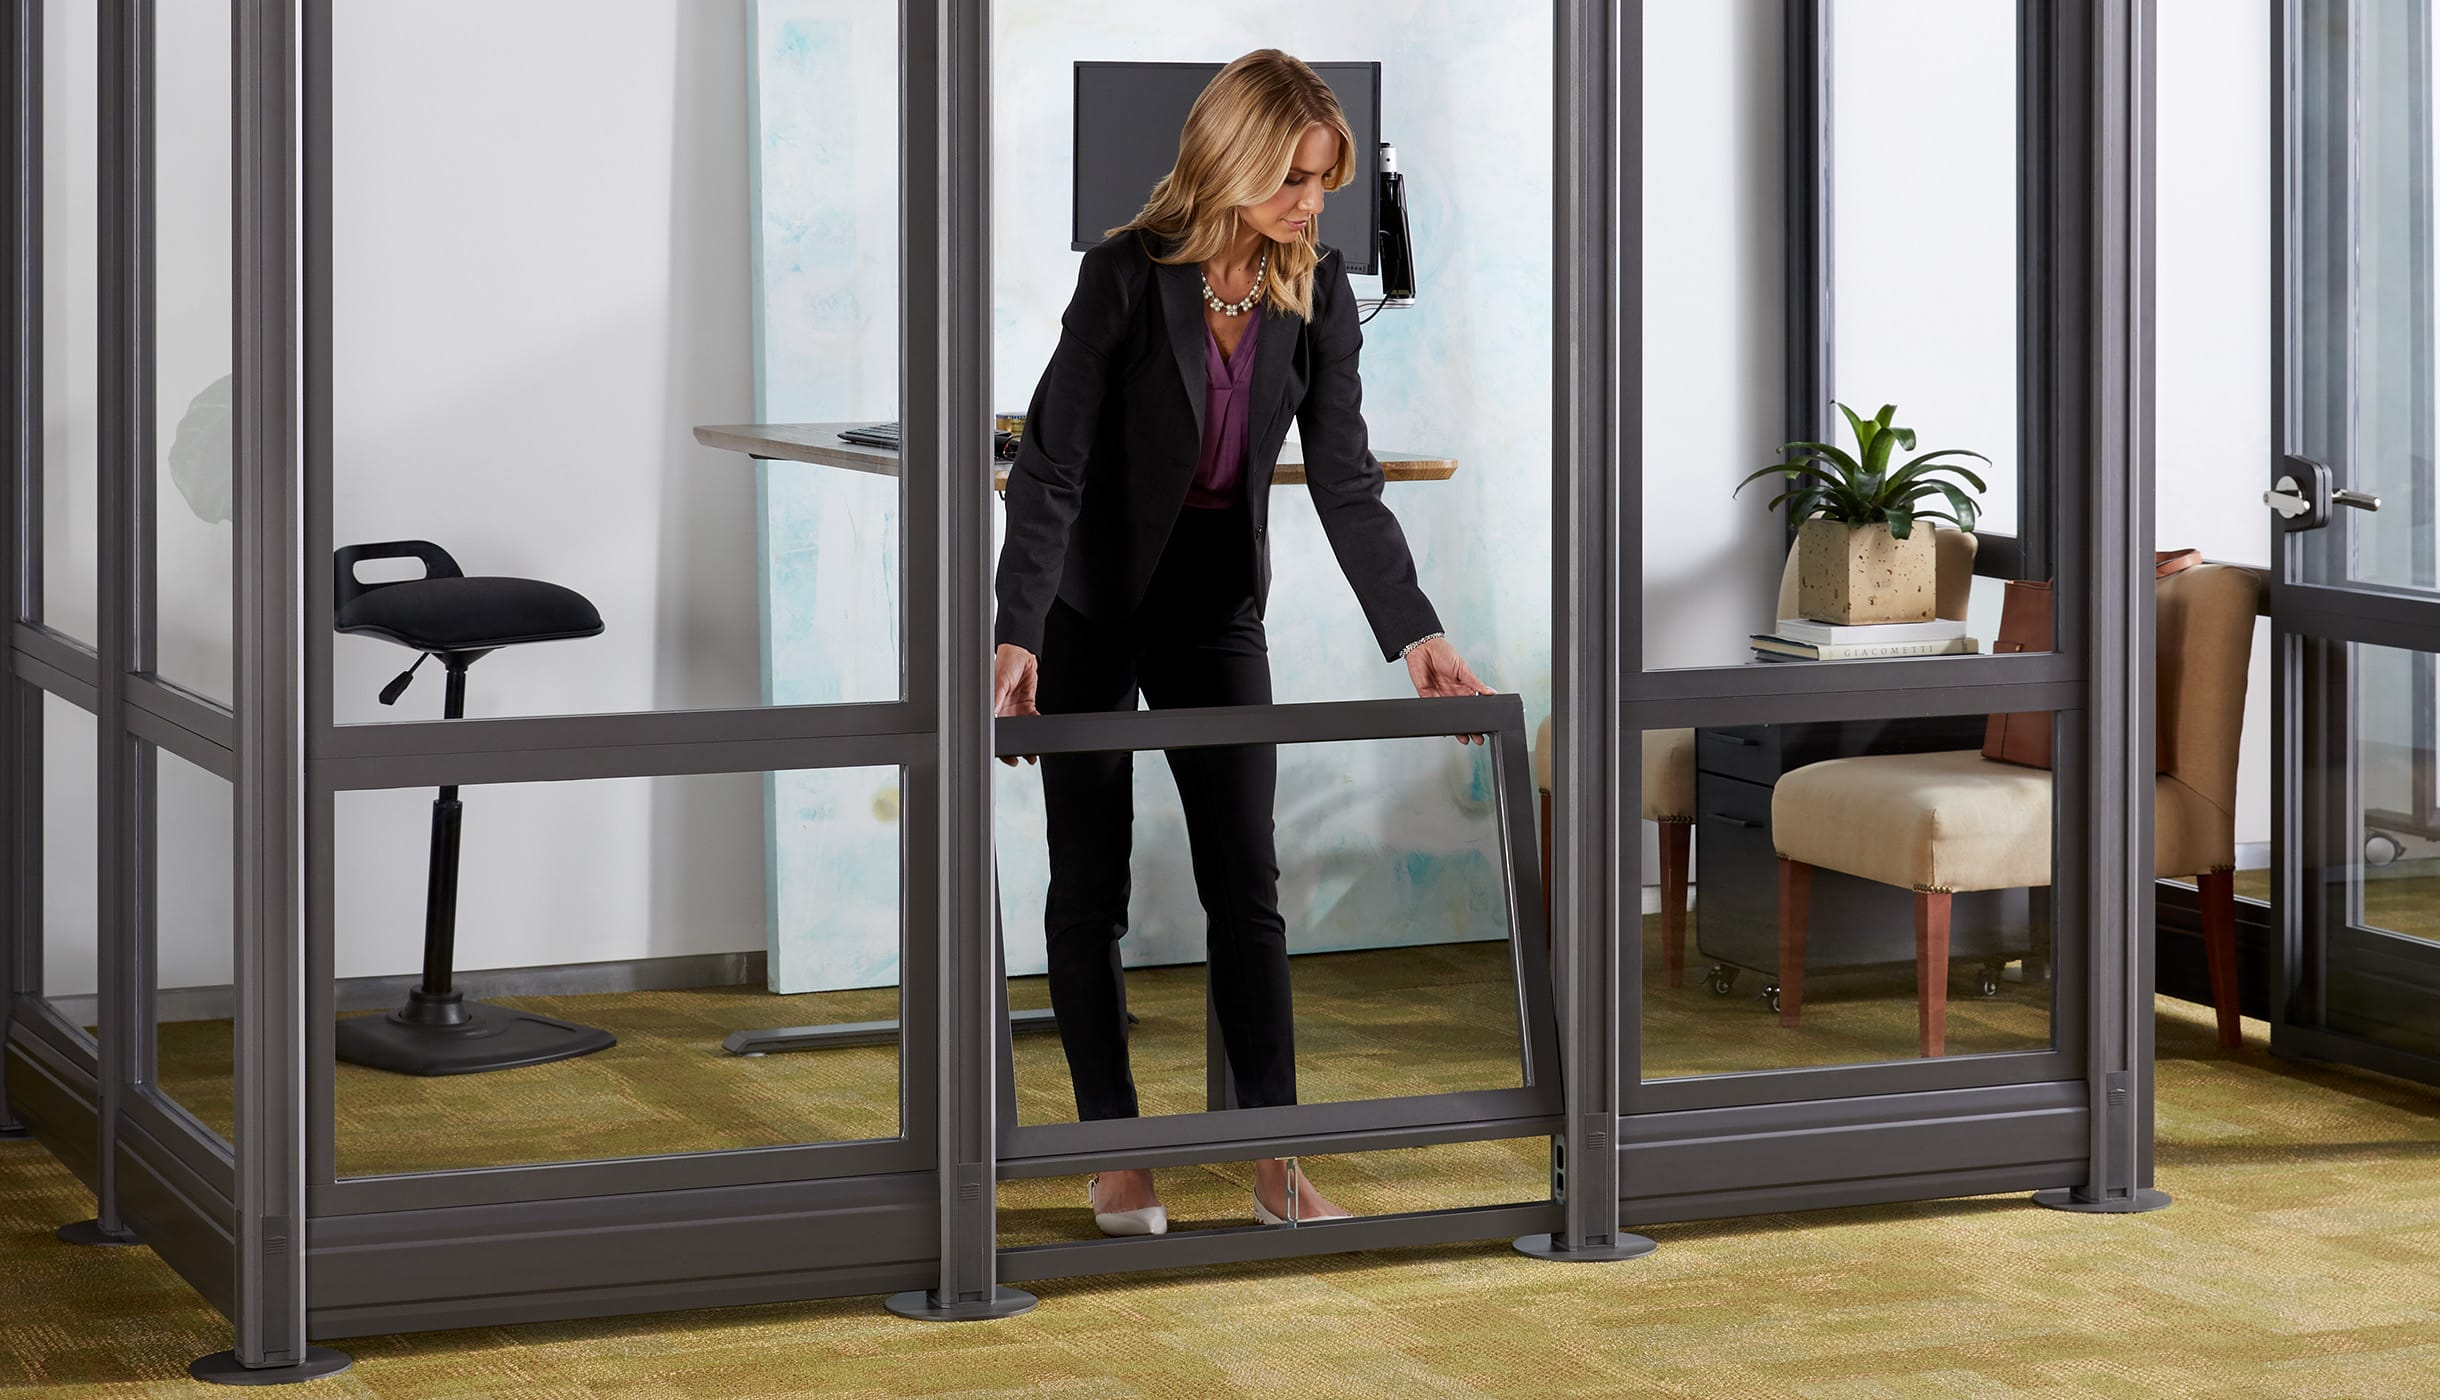 professional in business casual attire places wall panel into its slot as she finishes building her private office